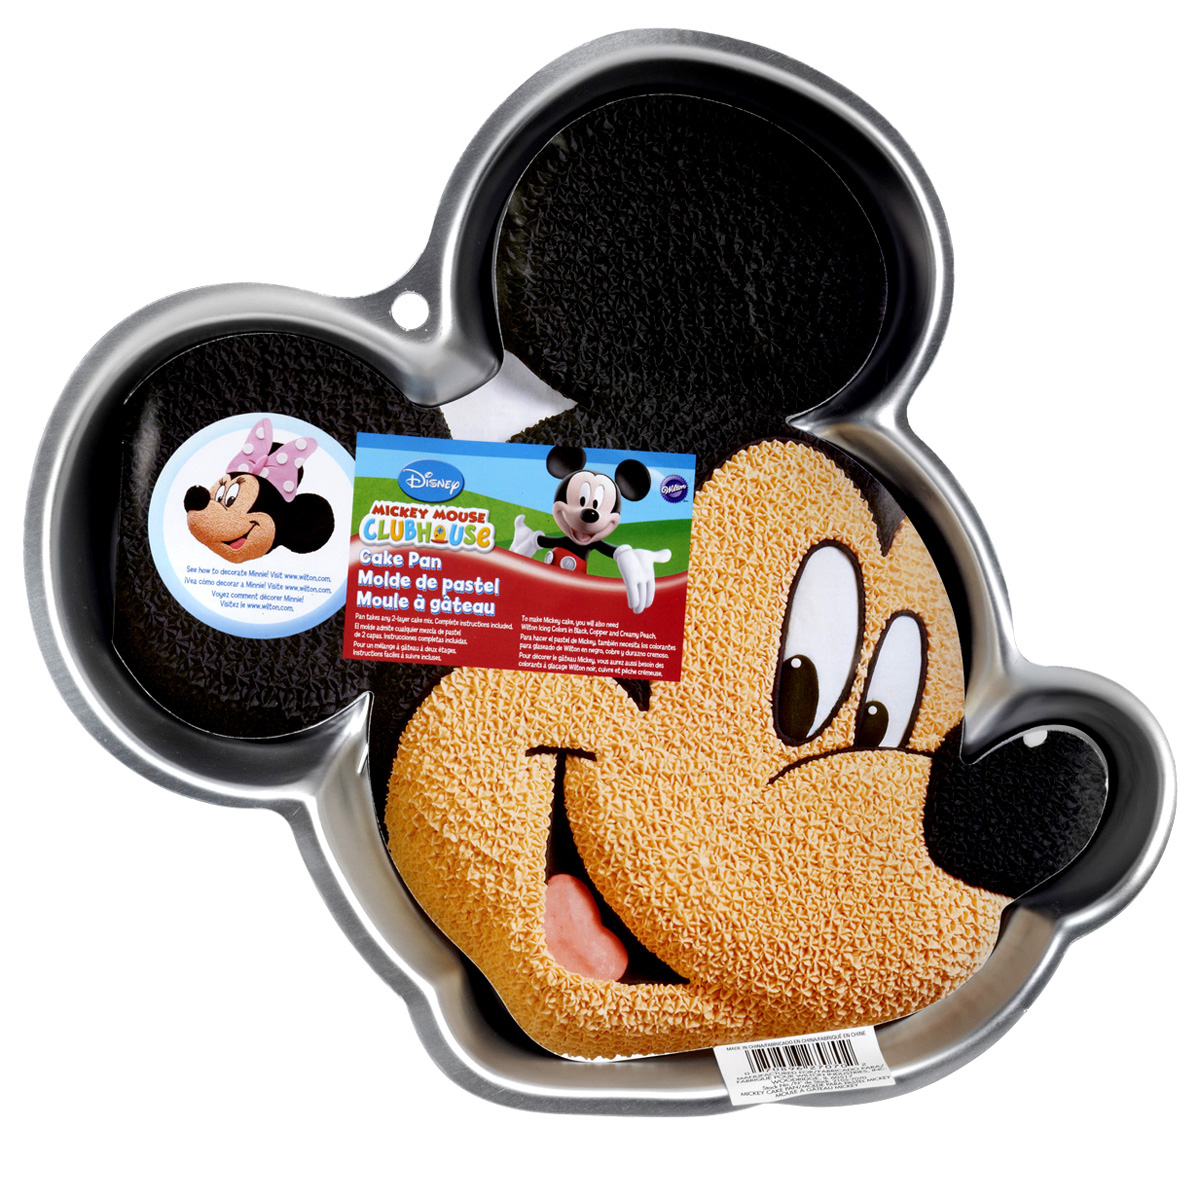 1200x1200 Mickey Mouse Clubhouse Cake Pan